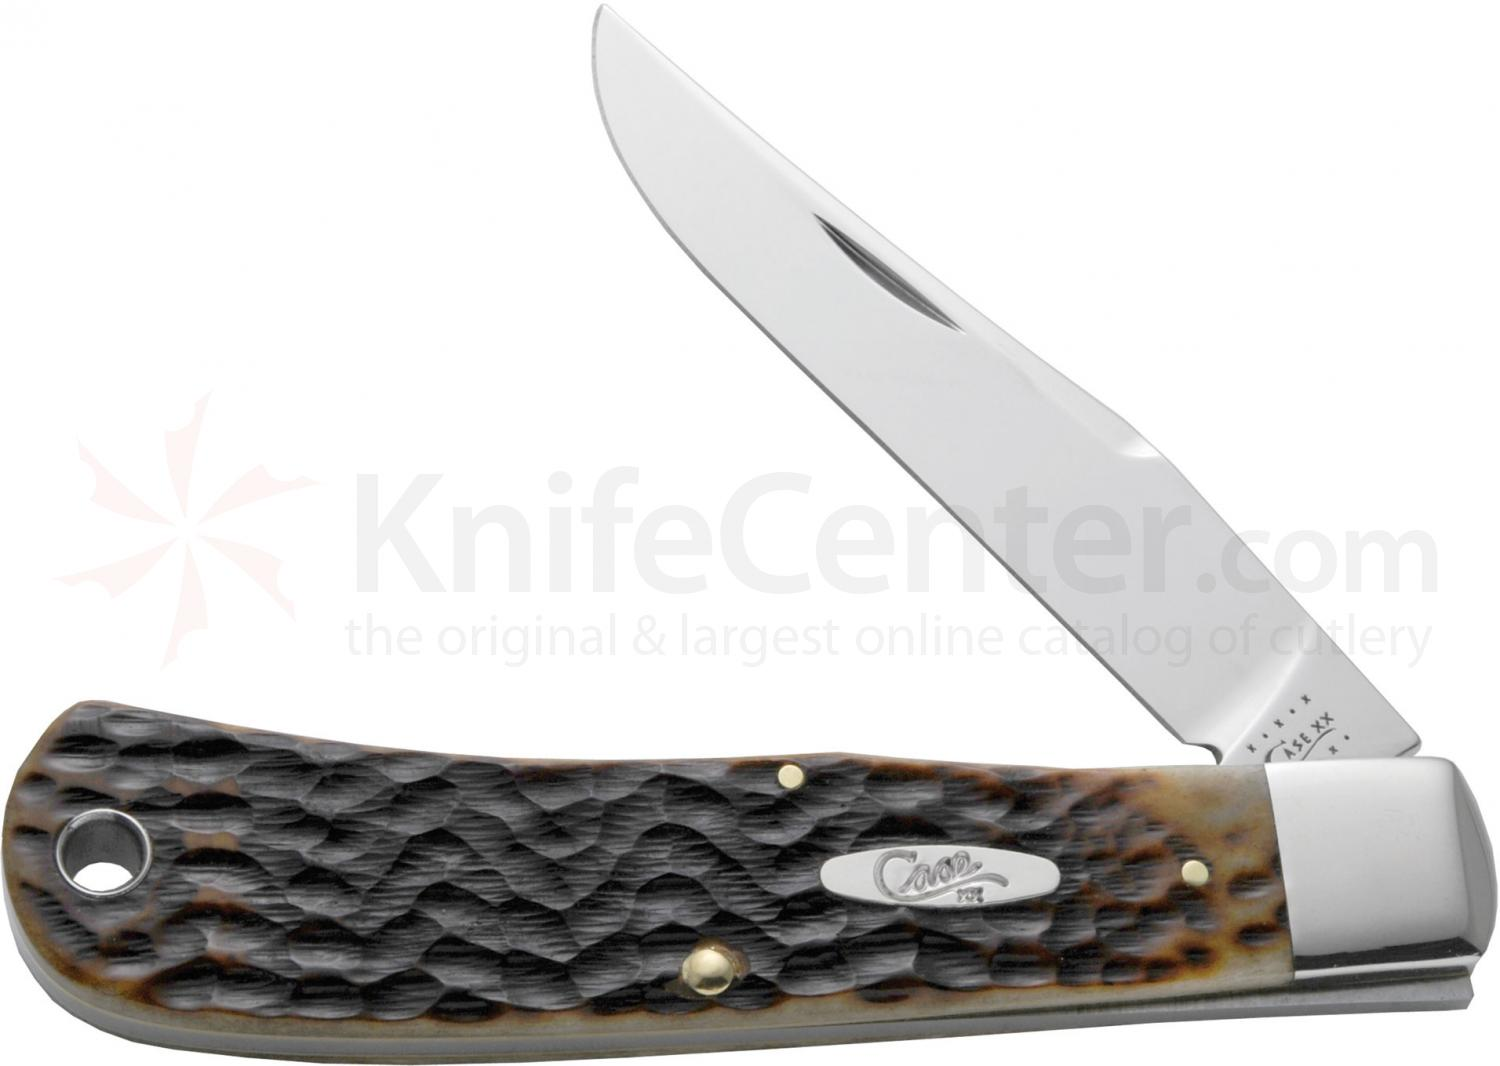 Case Tony Bose BackPocket Folding 3-1/2 inch Plain Blade, Jigged Molasses Bone Handles (TB61546 SS)